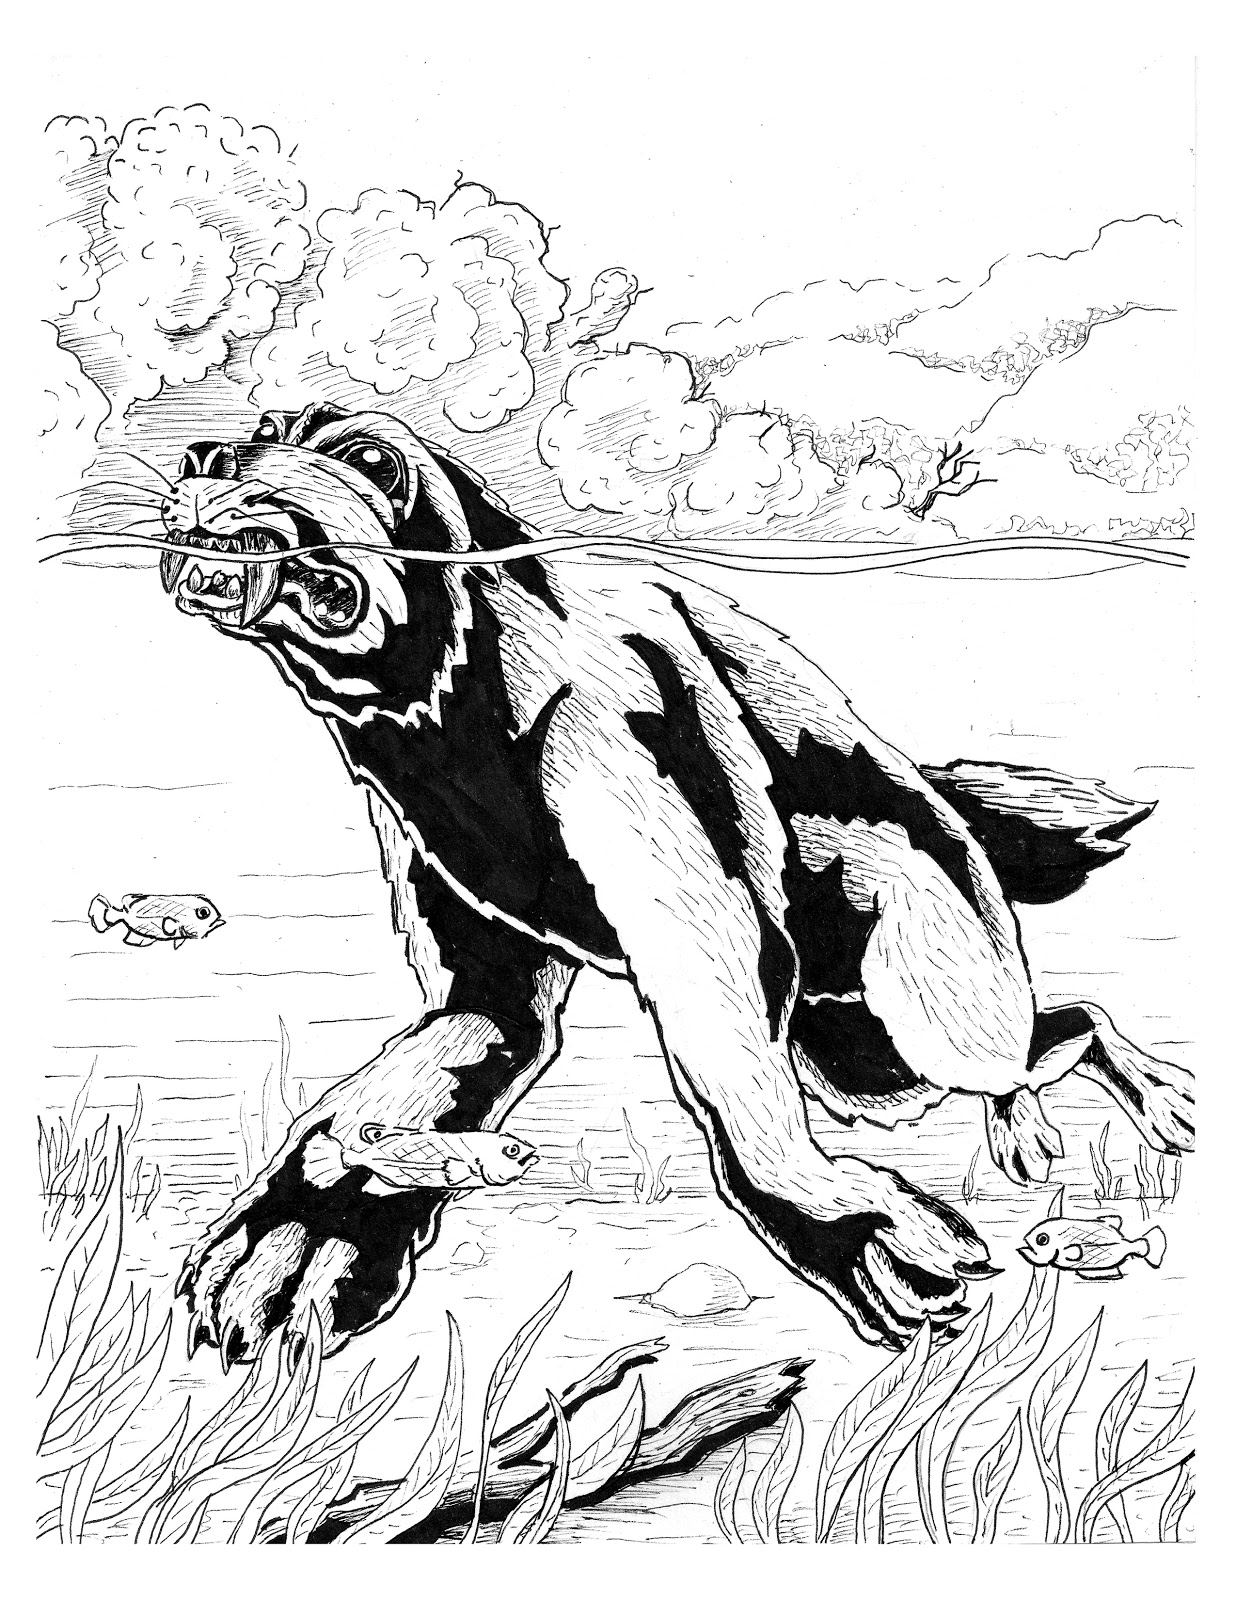 jake lagory illustrator cryptozoology coloring book pages 1 6